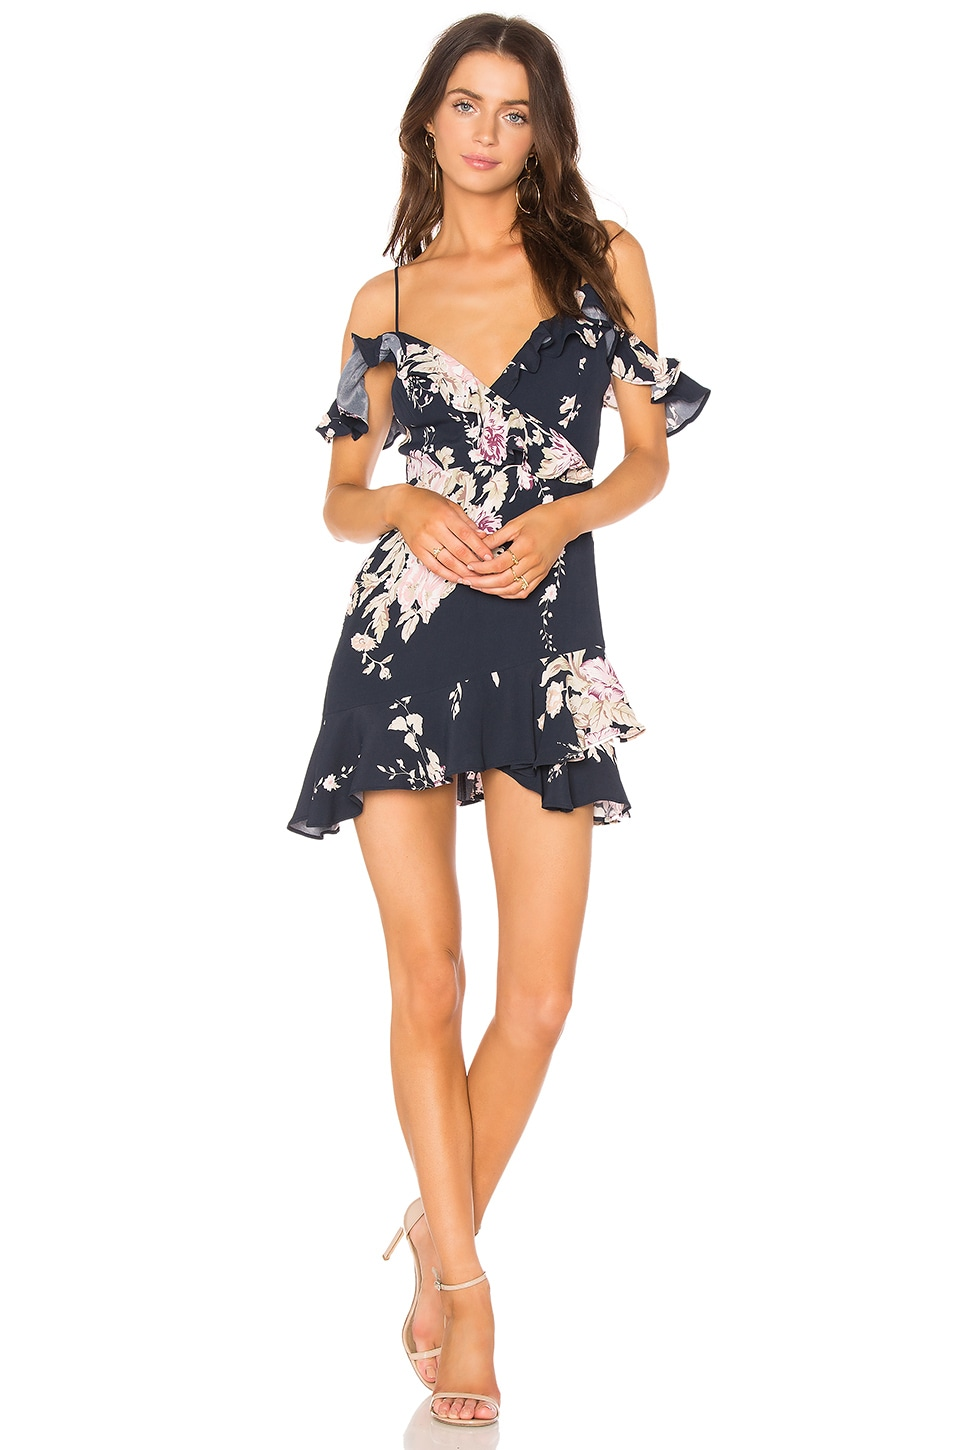 MAJORELLE Salsa Dress in Fauna